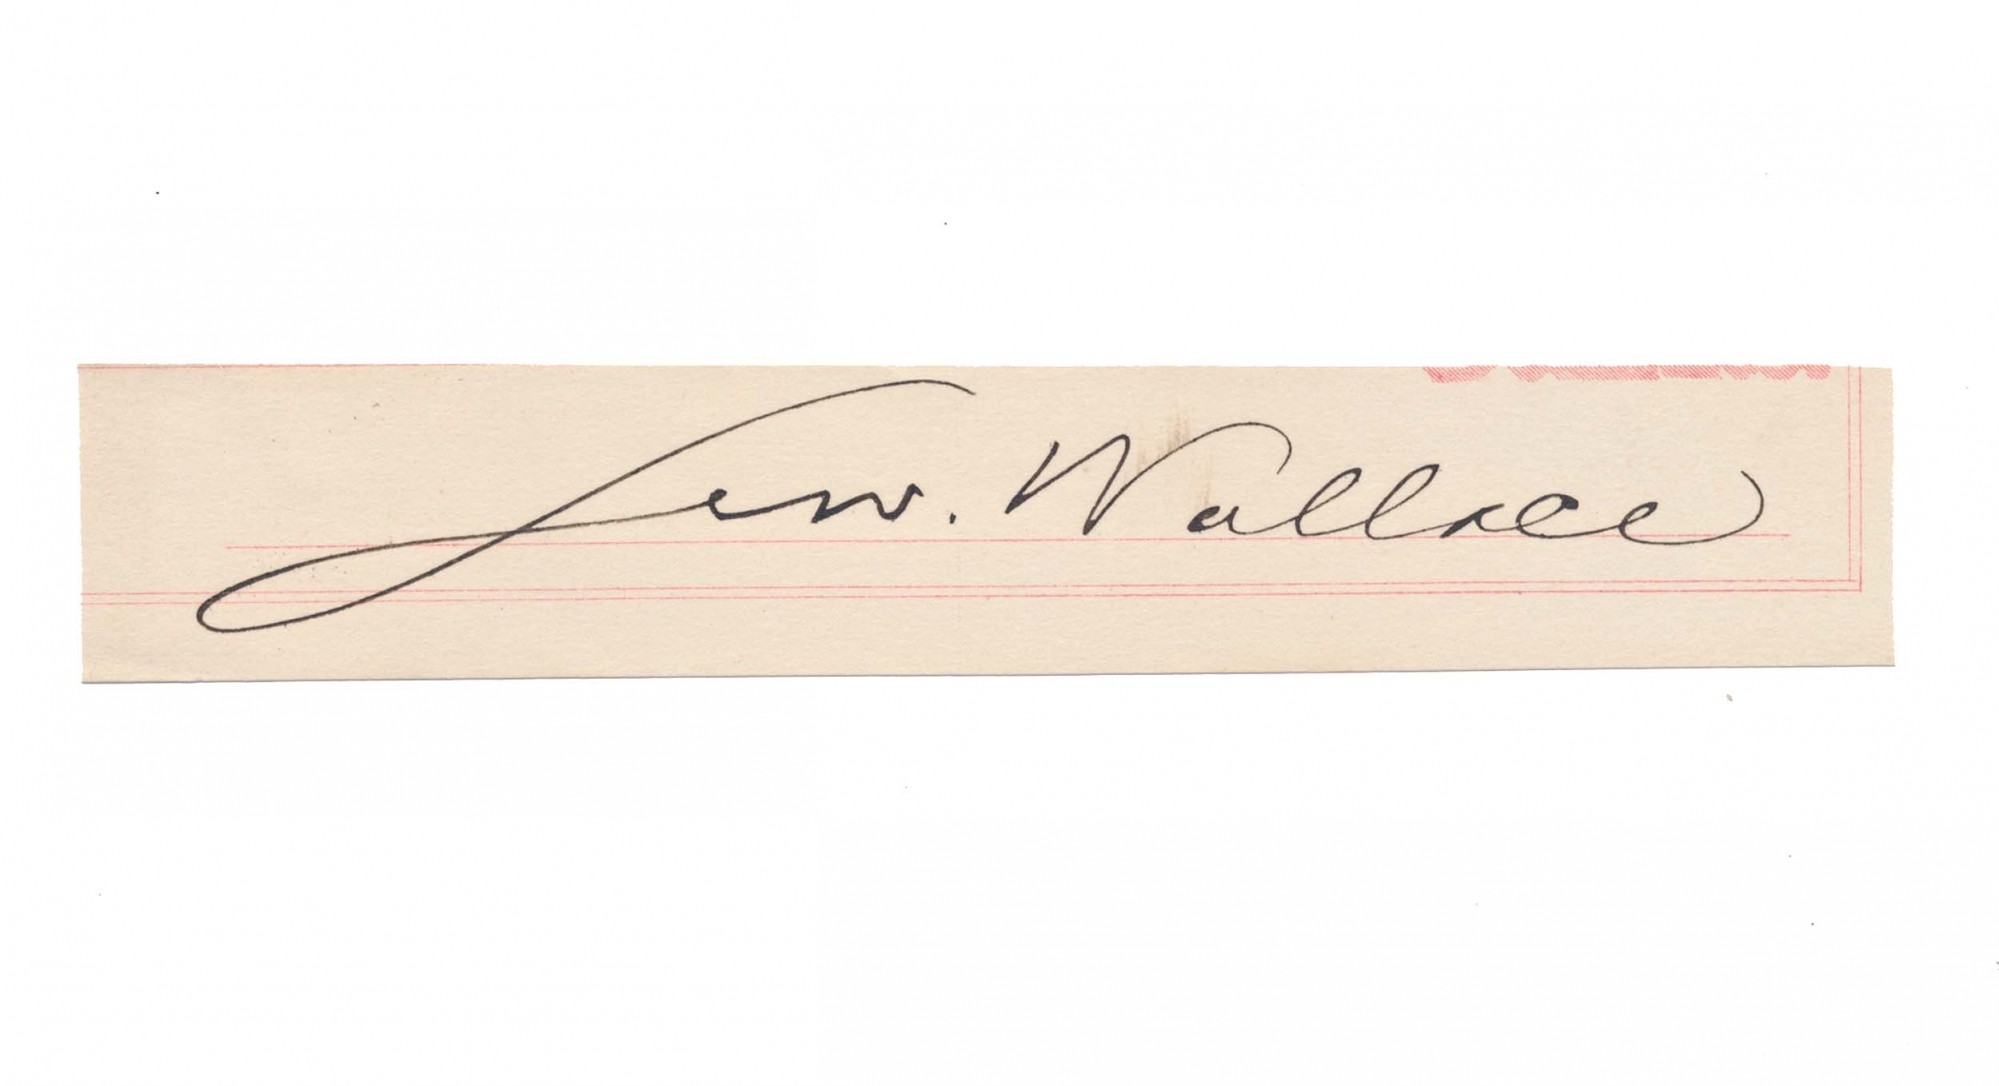 CLIPPED SIGNATURE OF MAJOR GENERAL LEW WALLACE - SAVIOR OF WASHINGTON IN 1864 AND FAMOUS AUTHOR